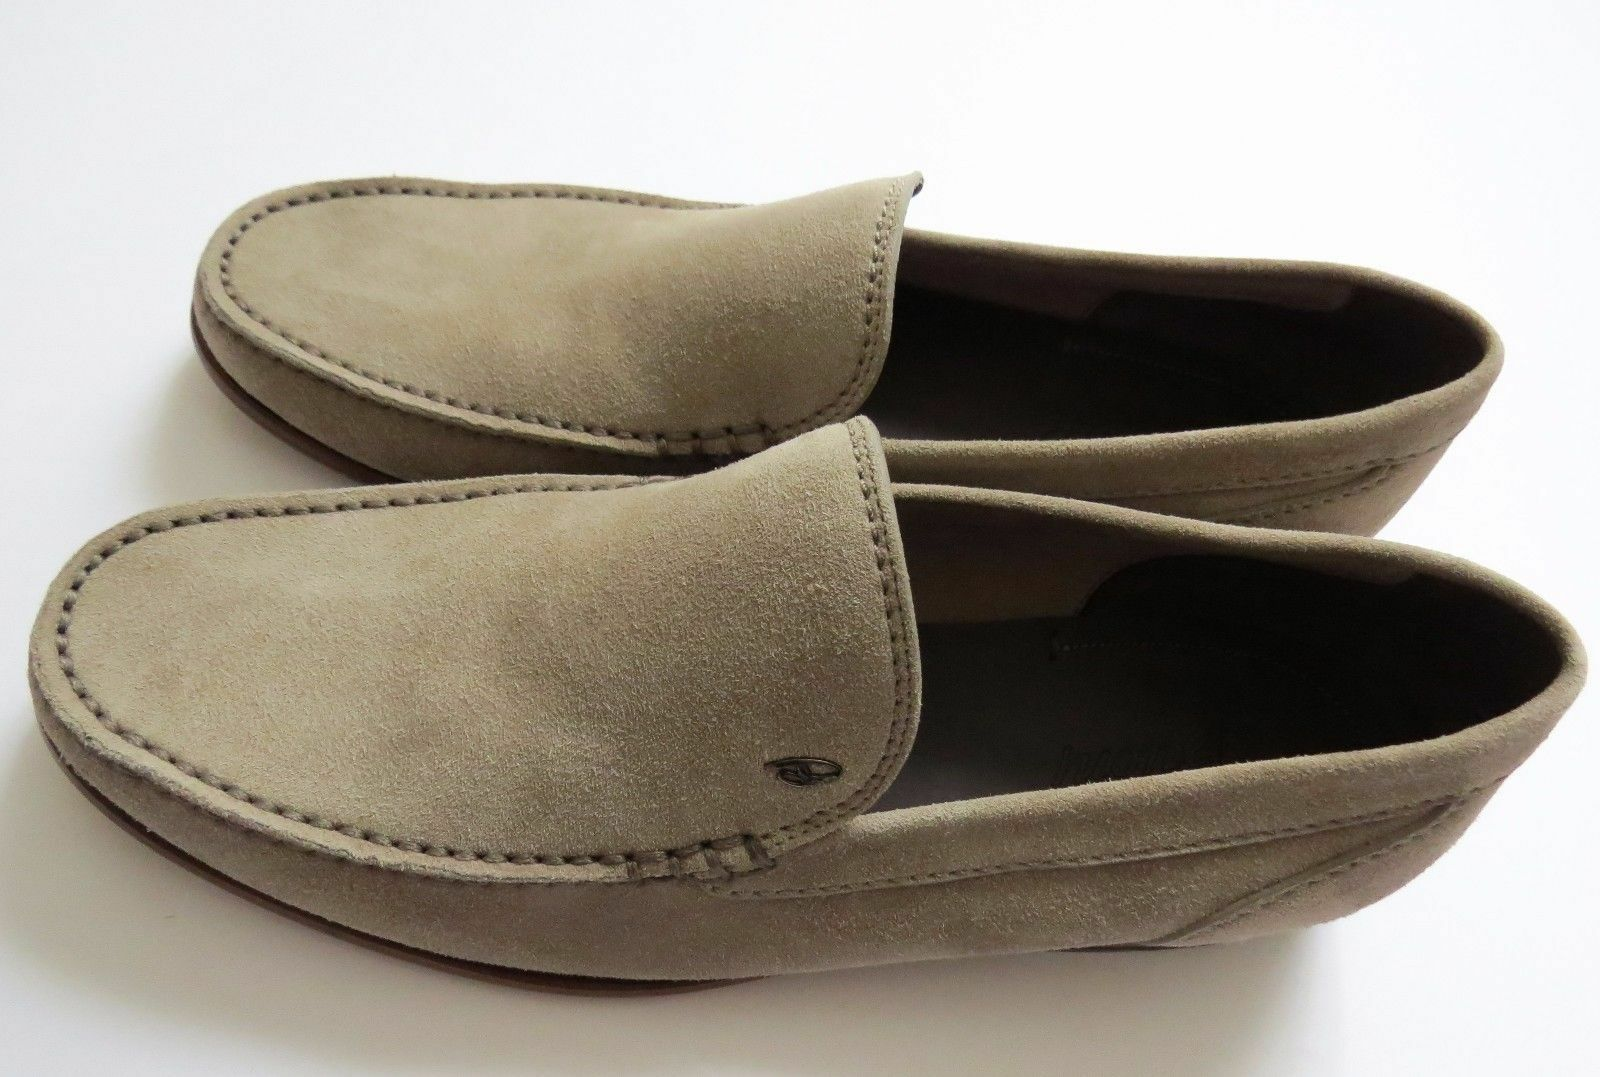 $1100 BRIONI Sand Beige Suede Shoes Loafers Size 10.5 US 43.5 Euro 9.5 UK